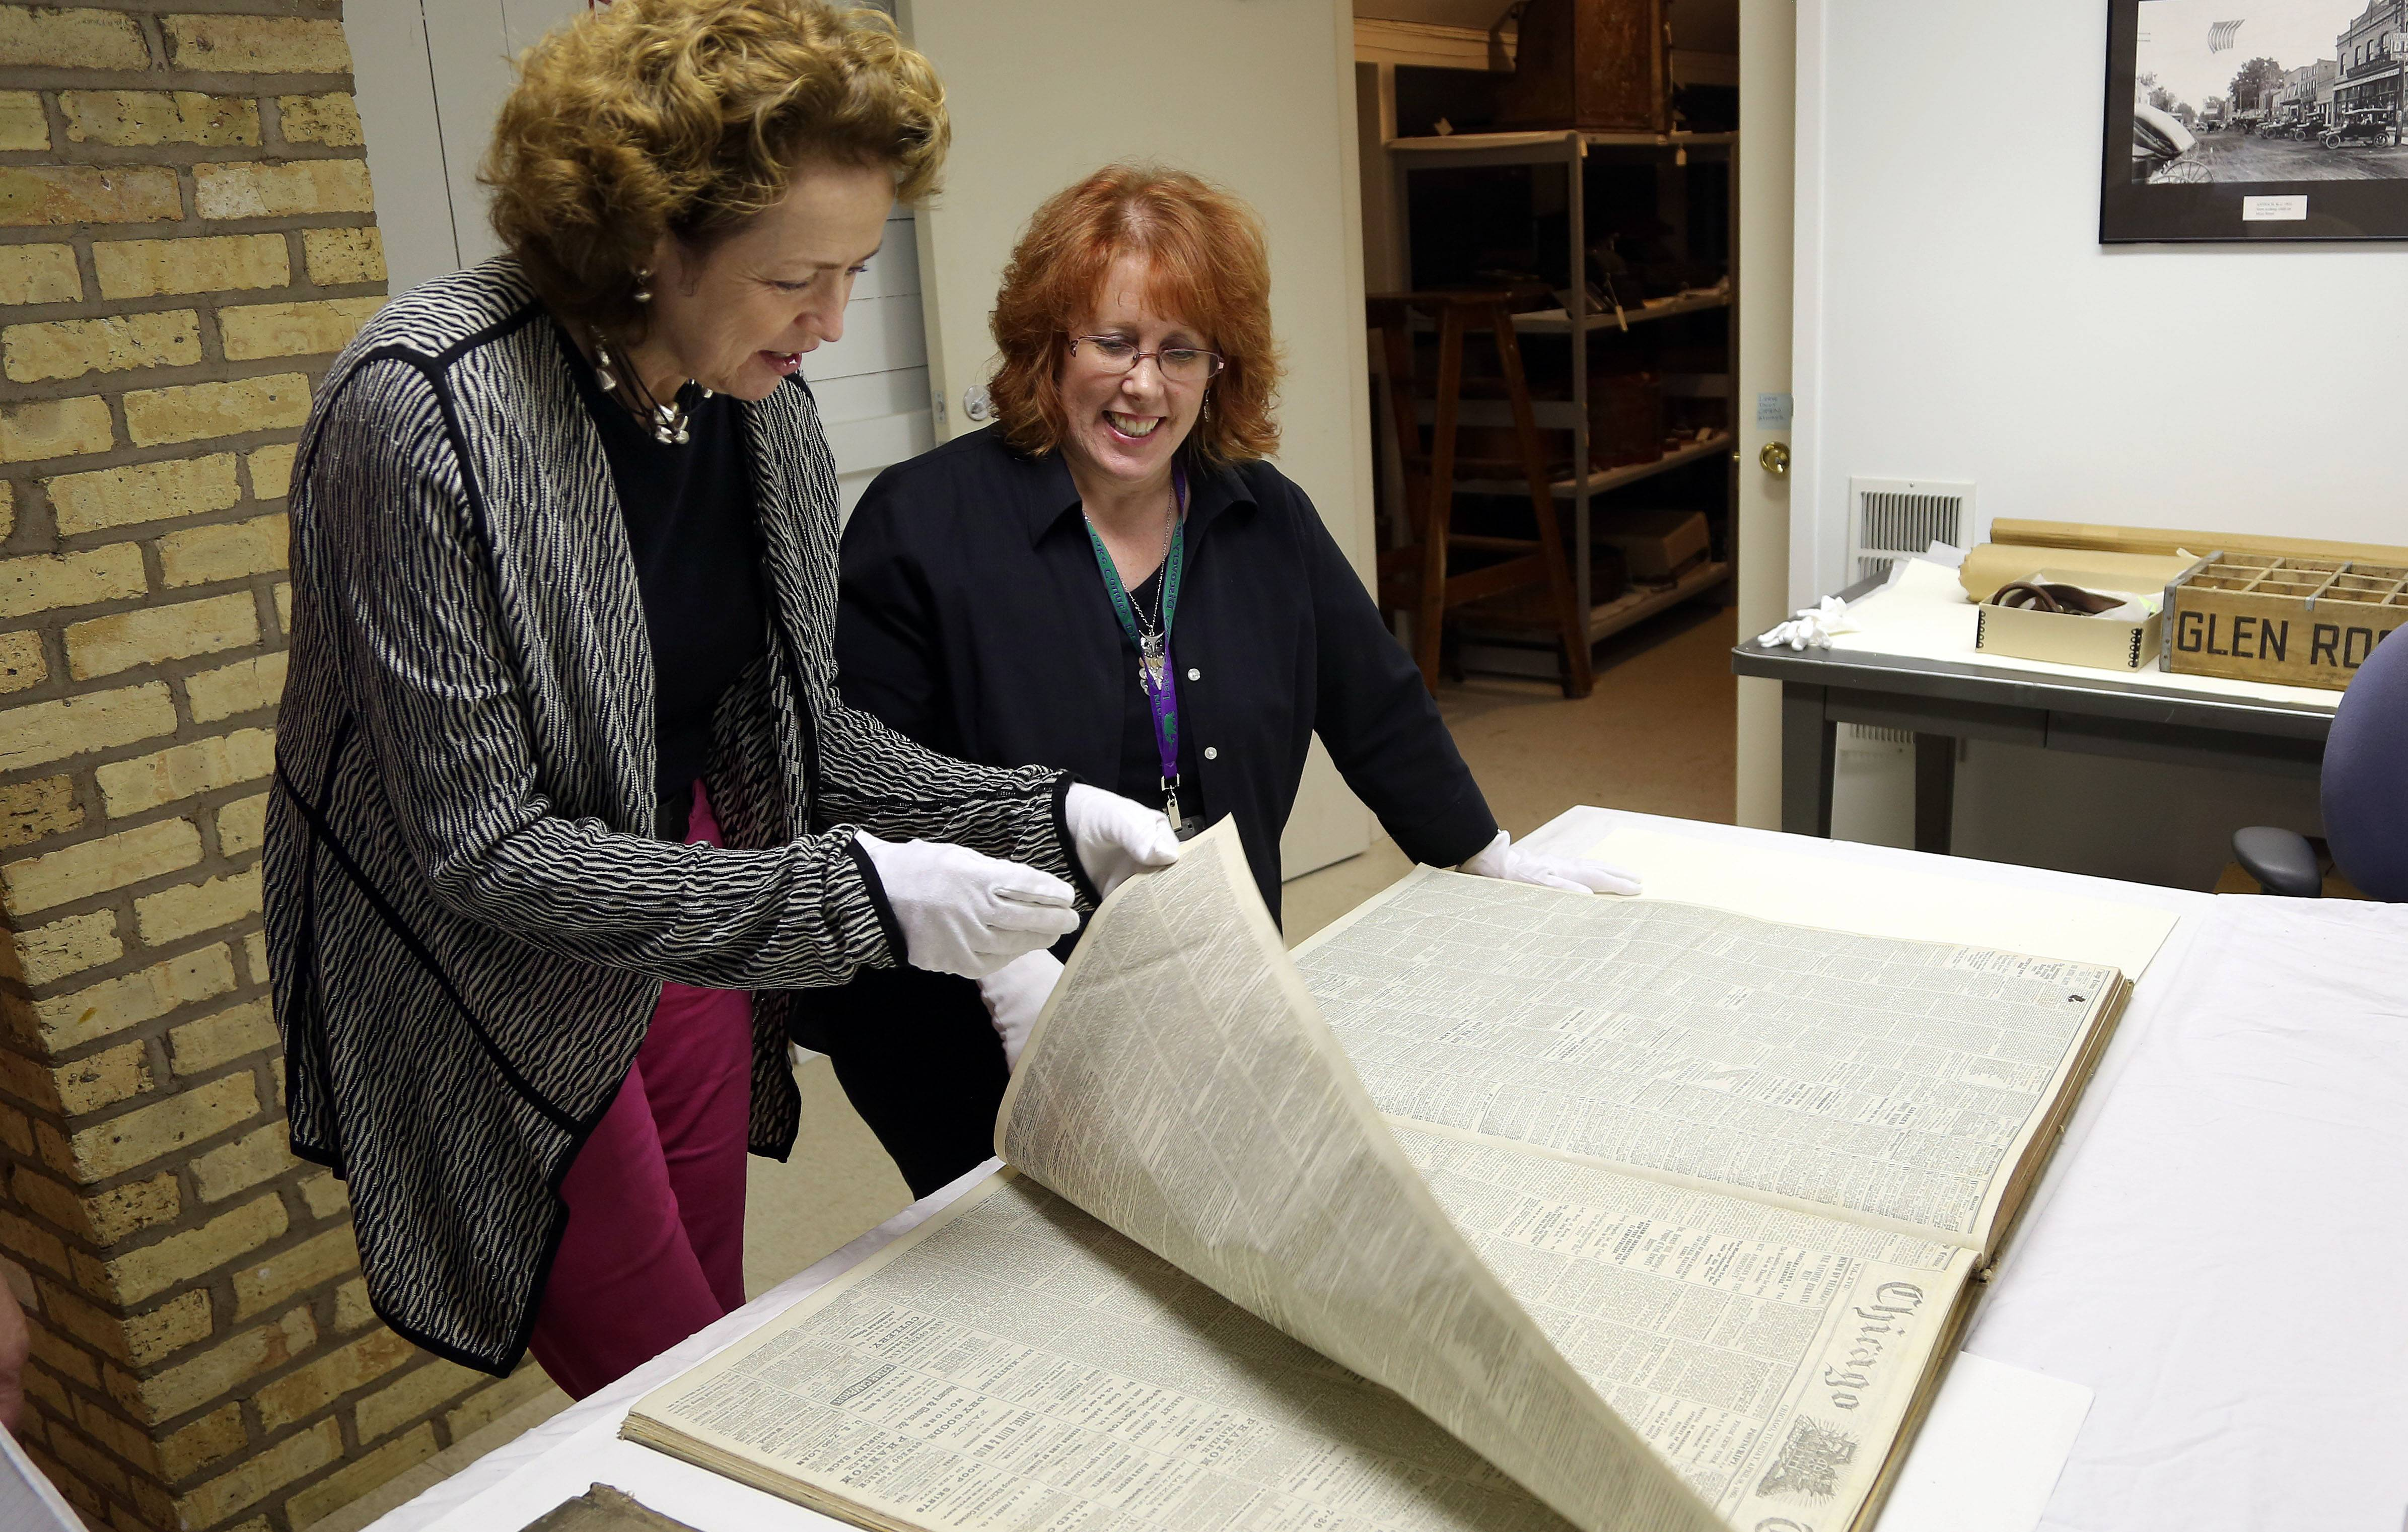 Lake County Discovery Museum Cultural Resources Director Katherine Hamilton-Smith, left, and Collections Coordinator Diana Dretske peruse the museum's collection of Civil War-era Chicago Tribune newspapers. The collection has been sold to the Robert R. McCormick Museum at Cantigny Park in Wheaton.